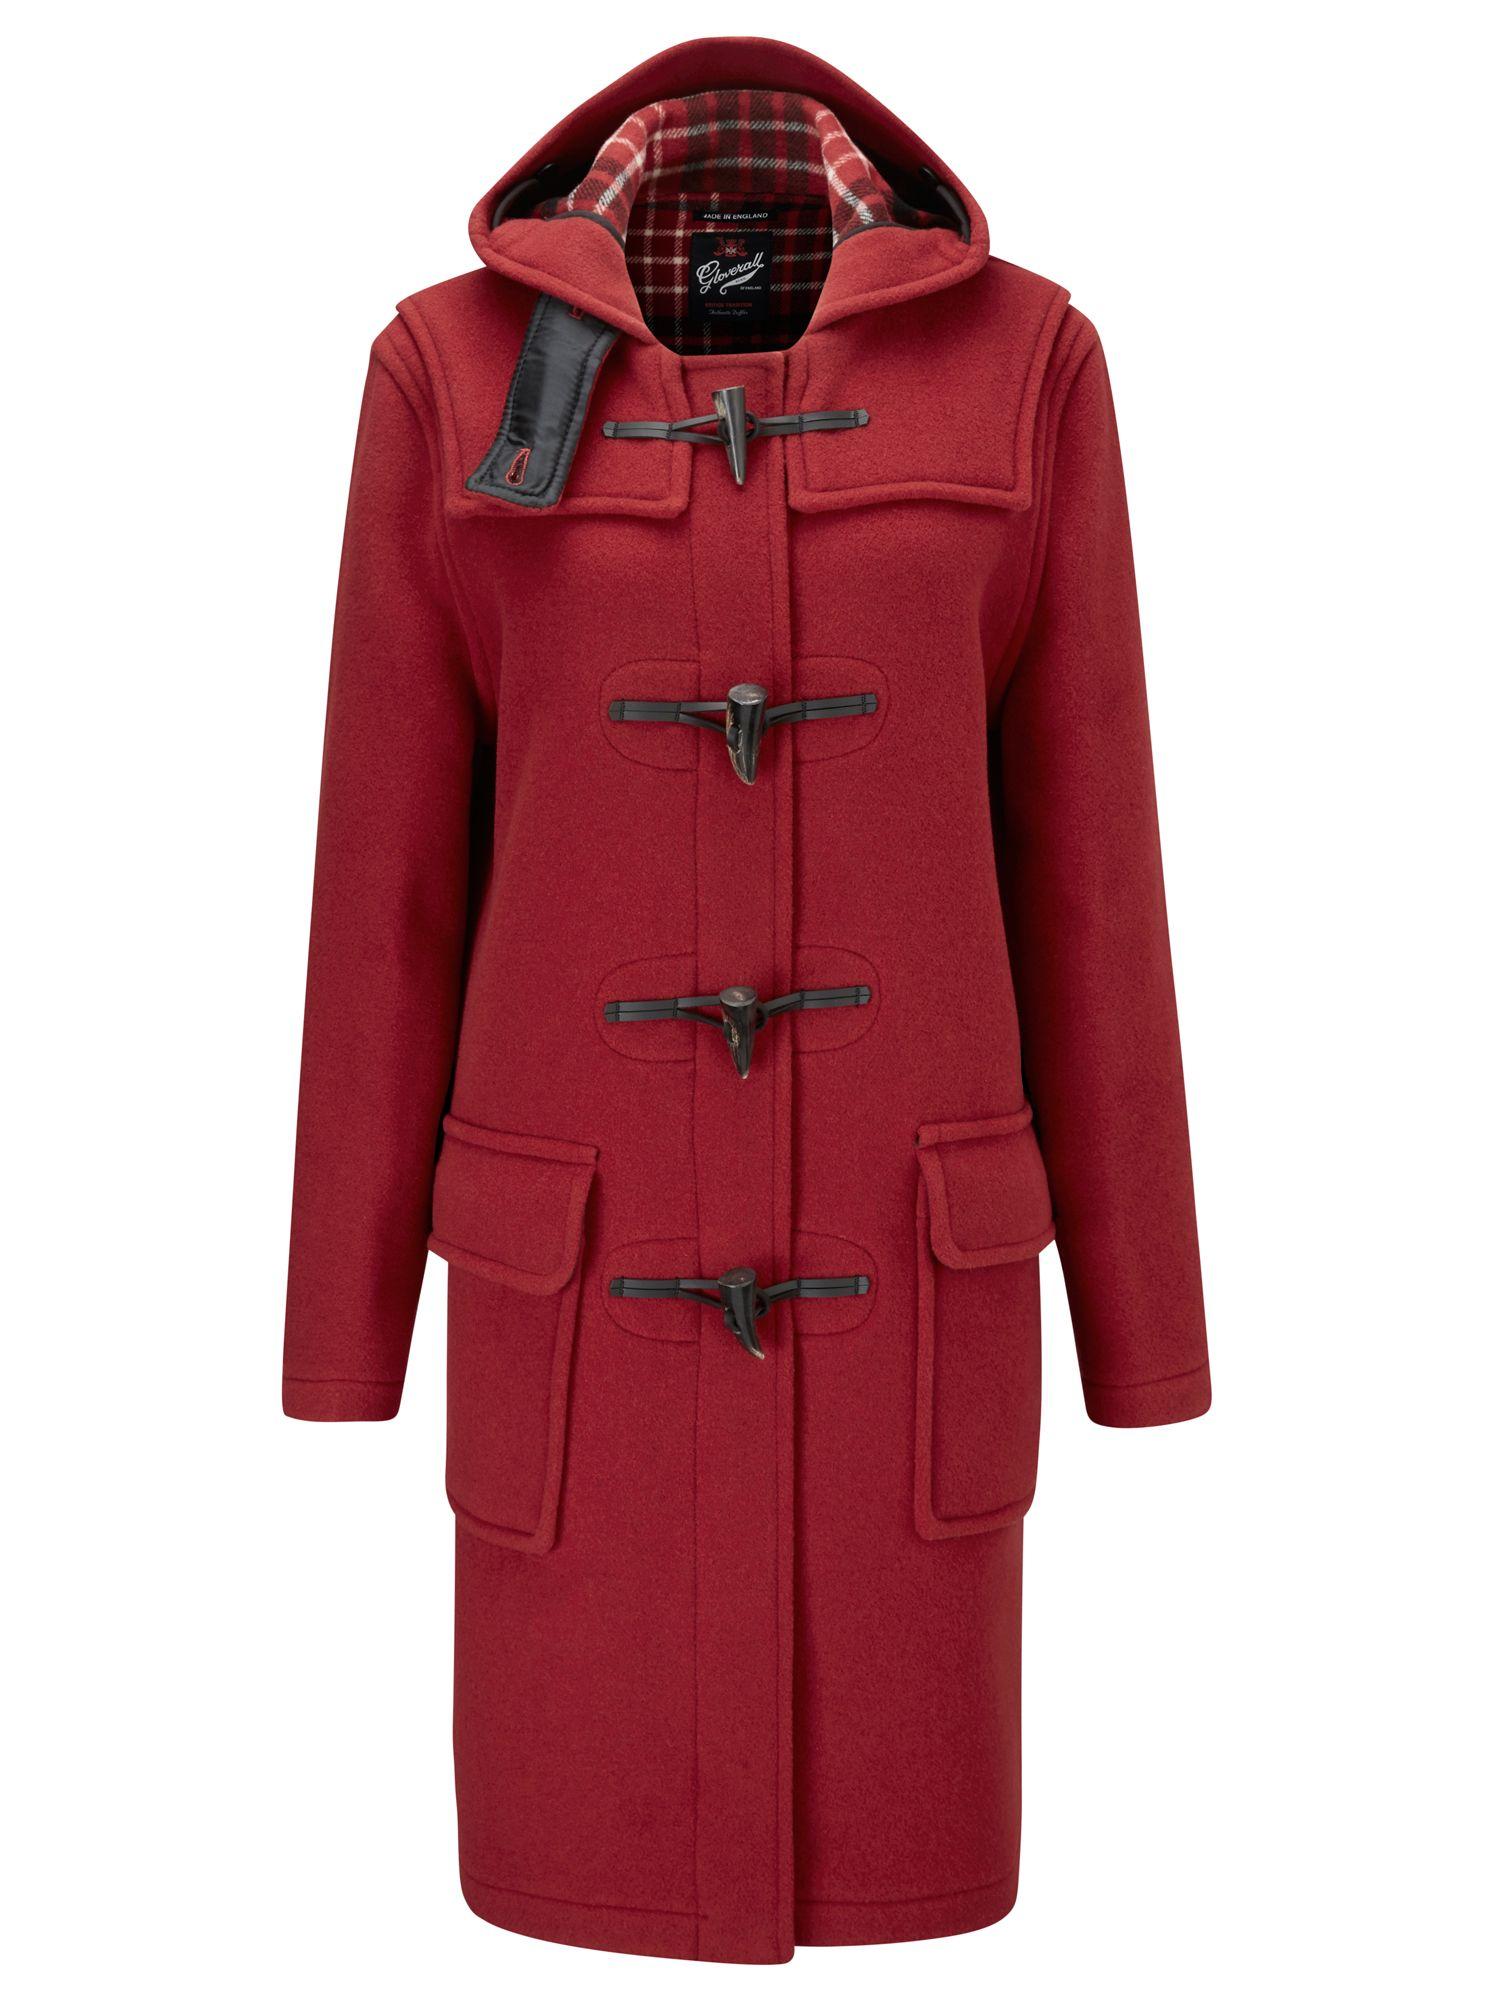 Gloverall Long Original Fit Duffle Coat, Red